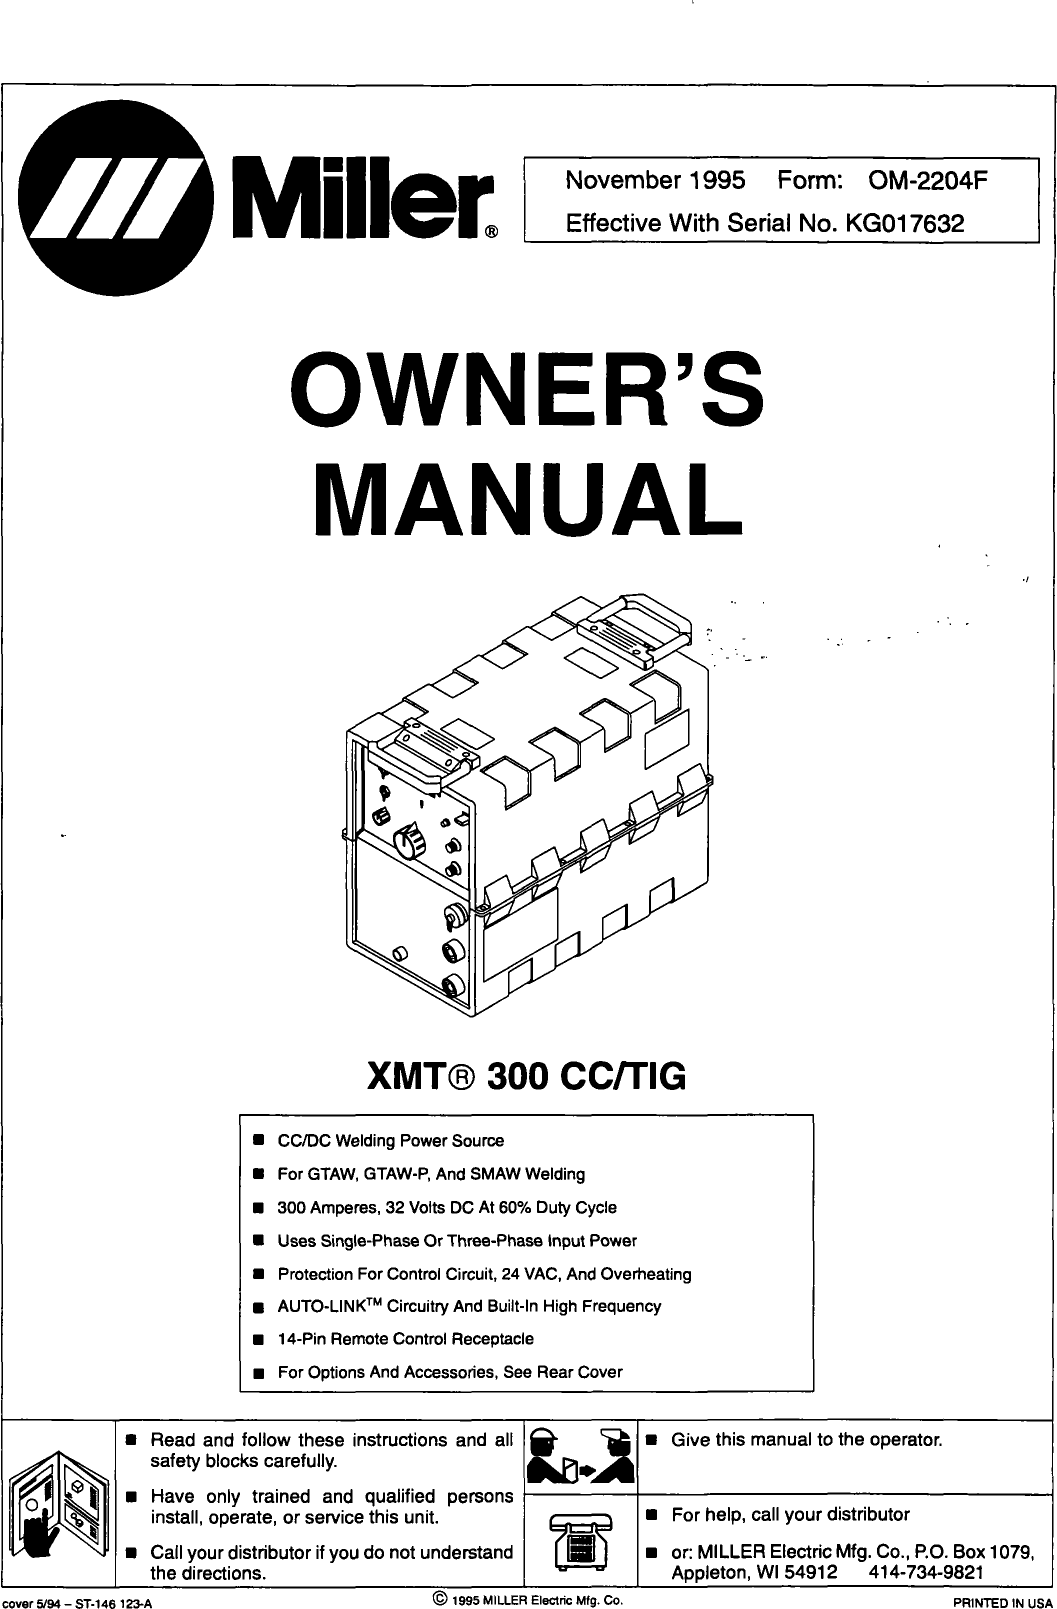 Foot Pedal Wiring Diagram Tig Welder 14 Pin Schematic Diagrams Lincoln O2204f Mil Miller Xmt 300 Cc